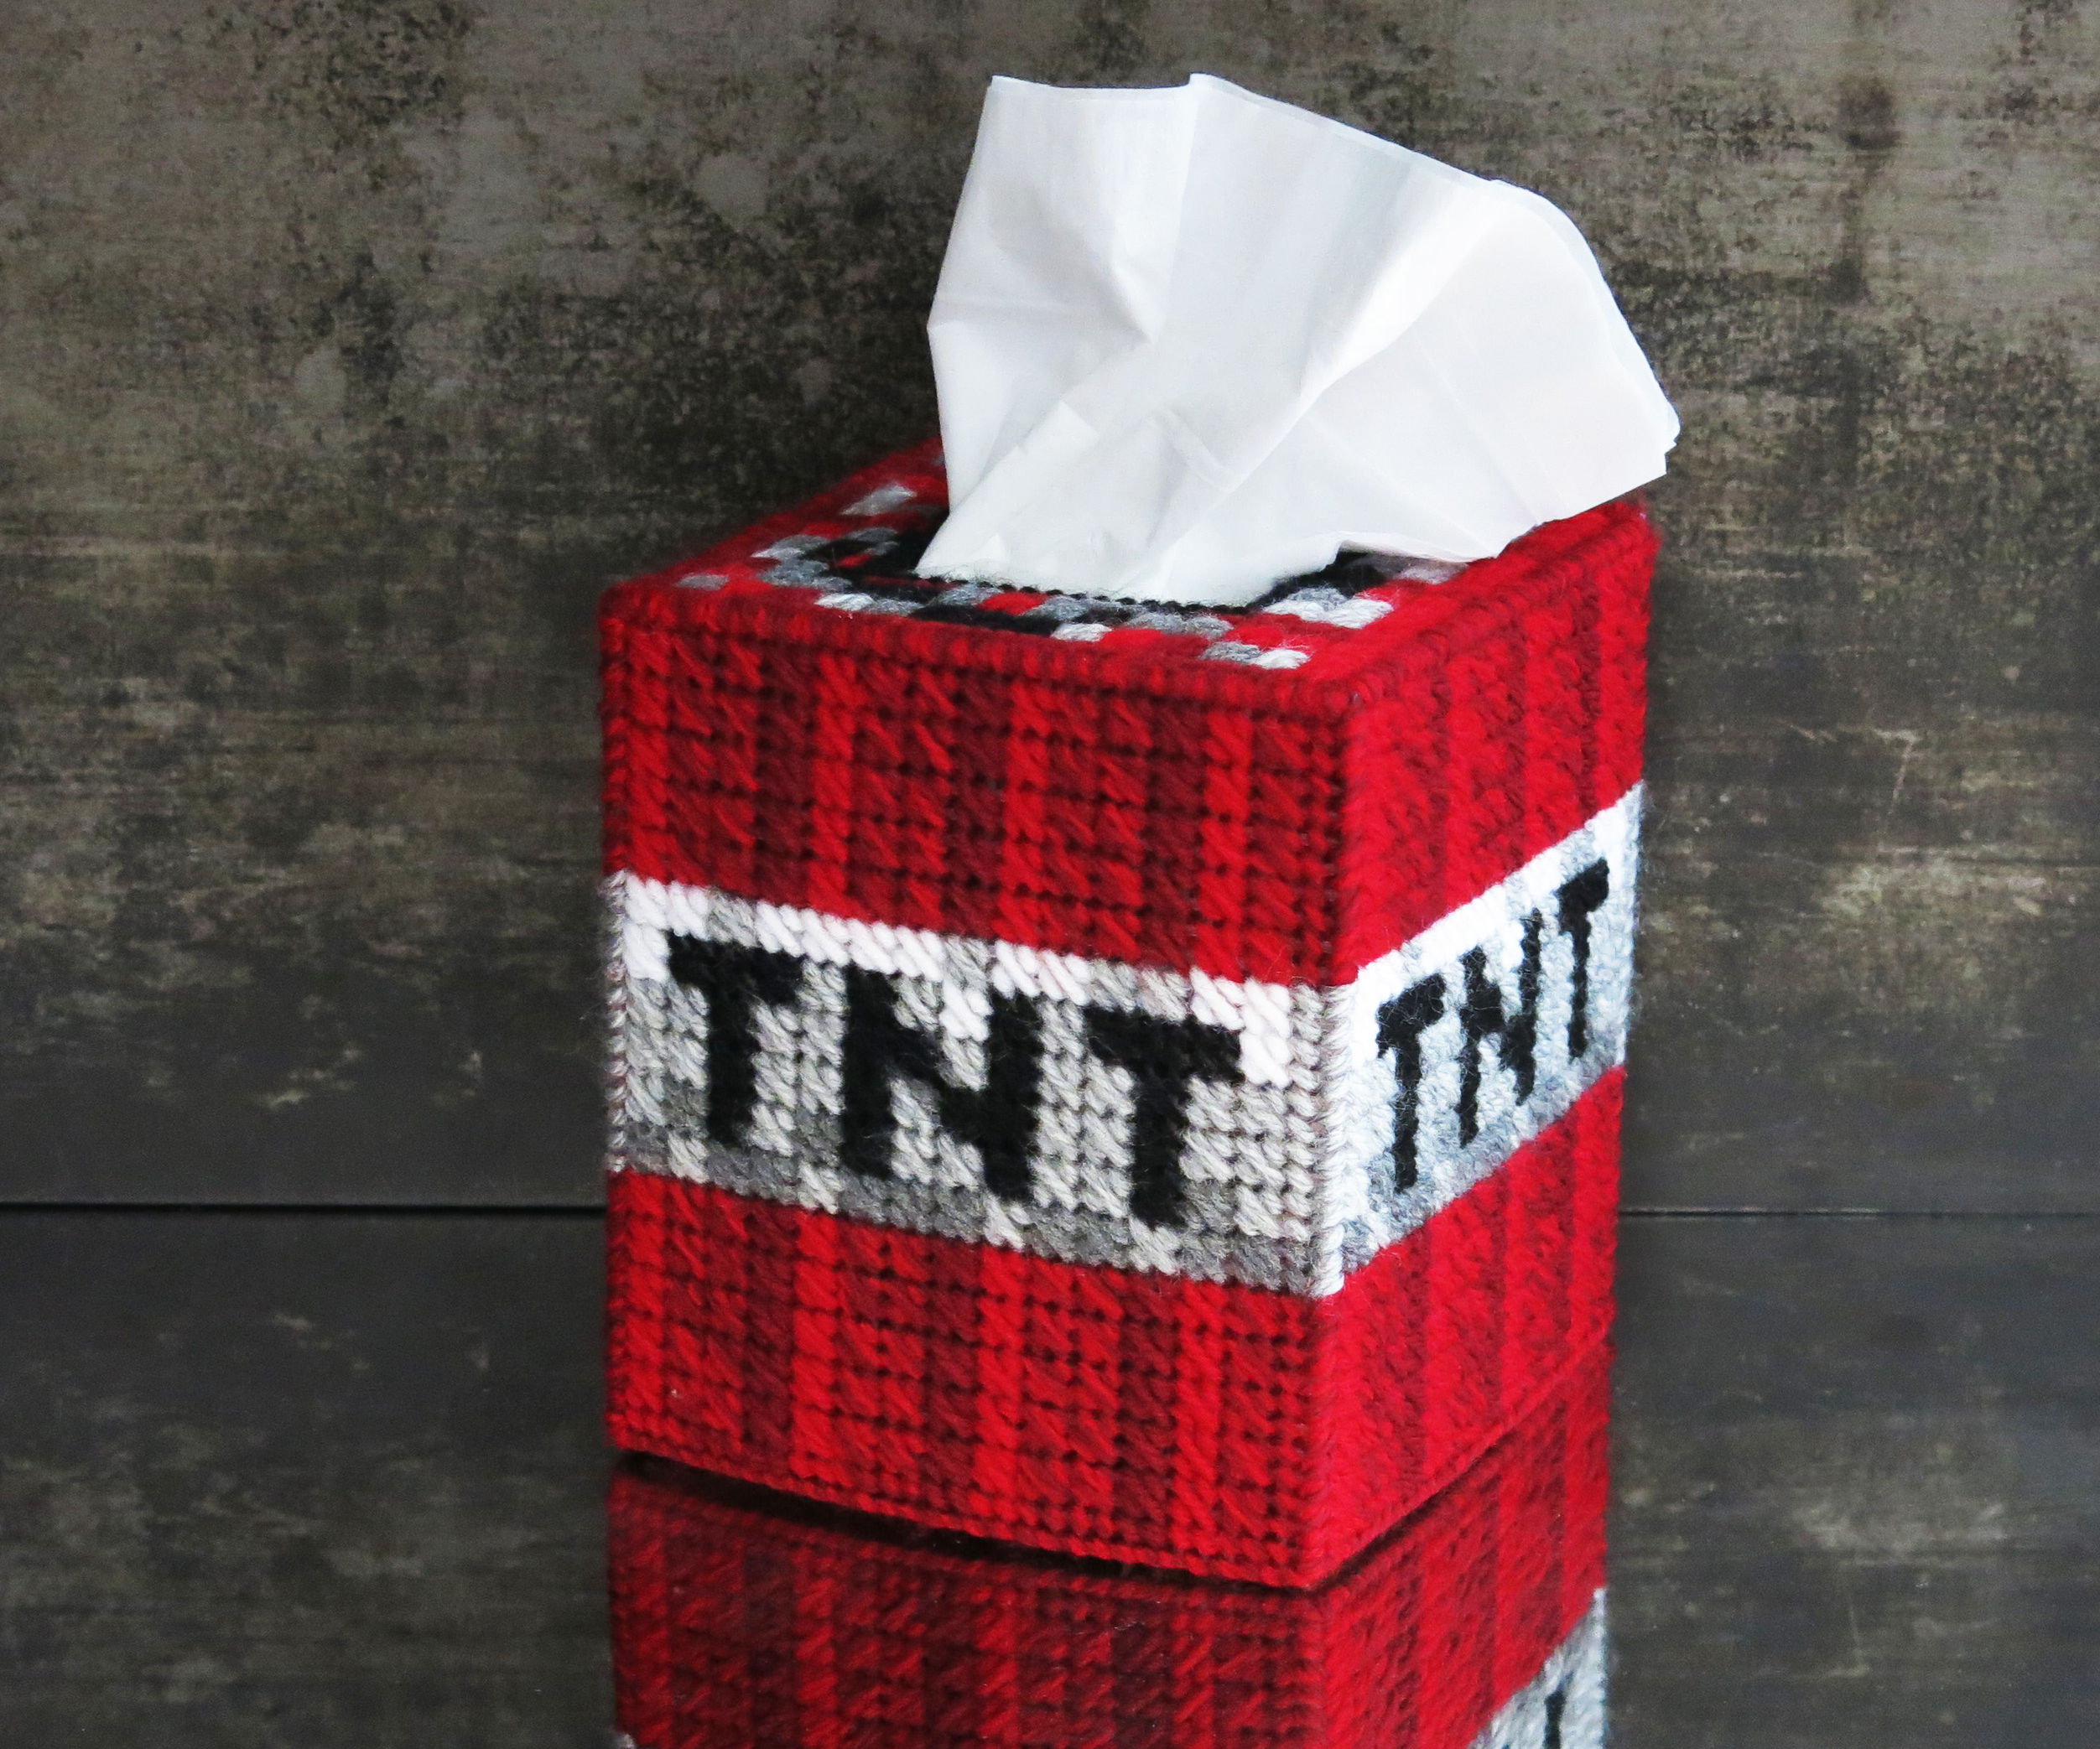 Minecraft Tnt Tissue Box Cover 10 Steps With Pictures Instructables